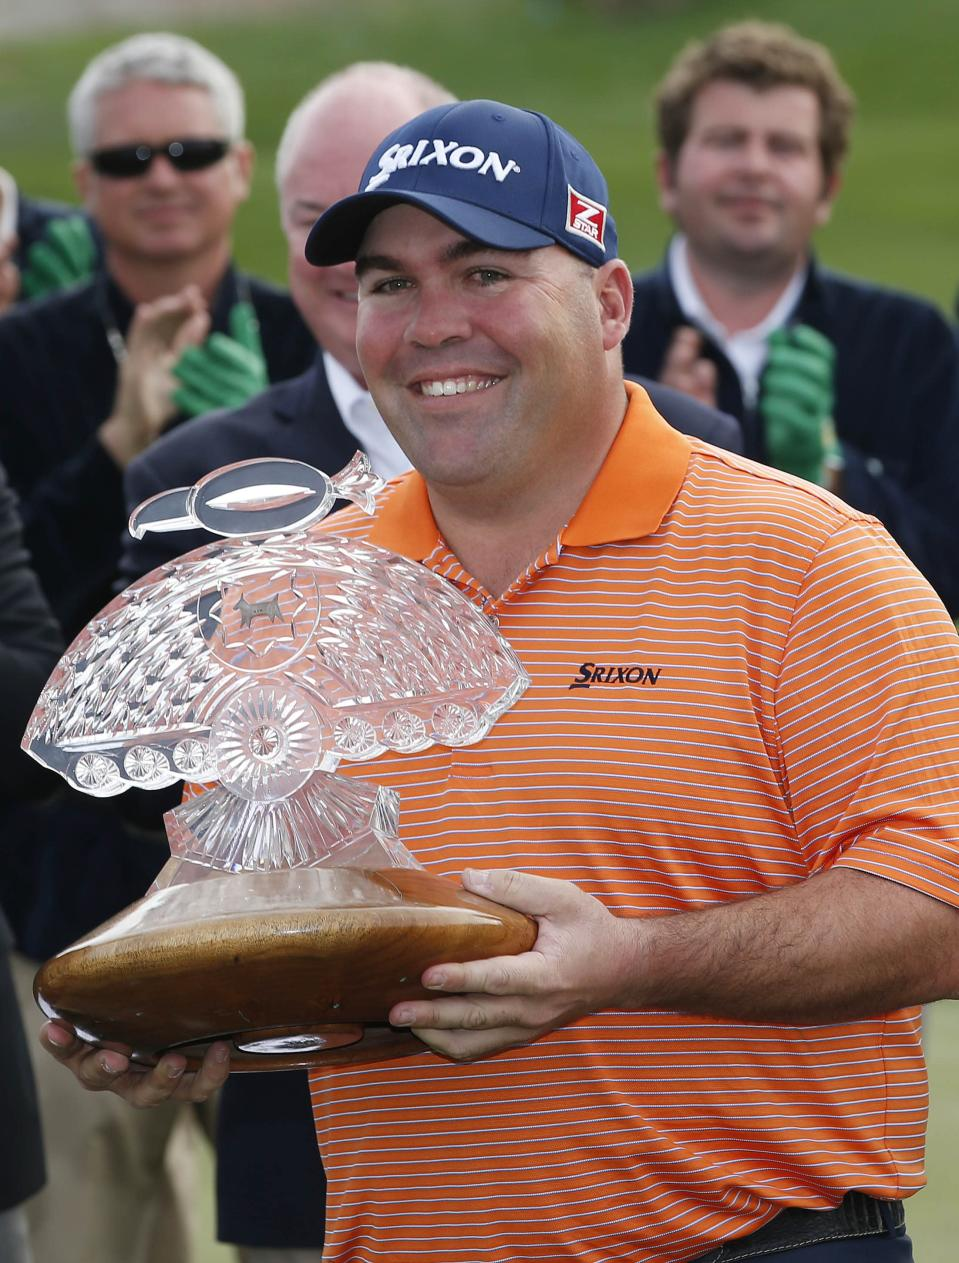 Kevin Stadler smiles as he receives the championship trophy as the tournament winner after the final round of the Phoenix Open golf tournament on Sunday, Feb. 2, 2014, in Scottsdale, Ariz. (AP Photo/Ross D. Franklin)